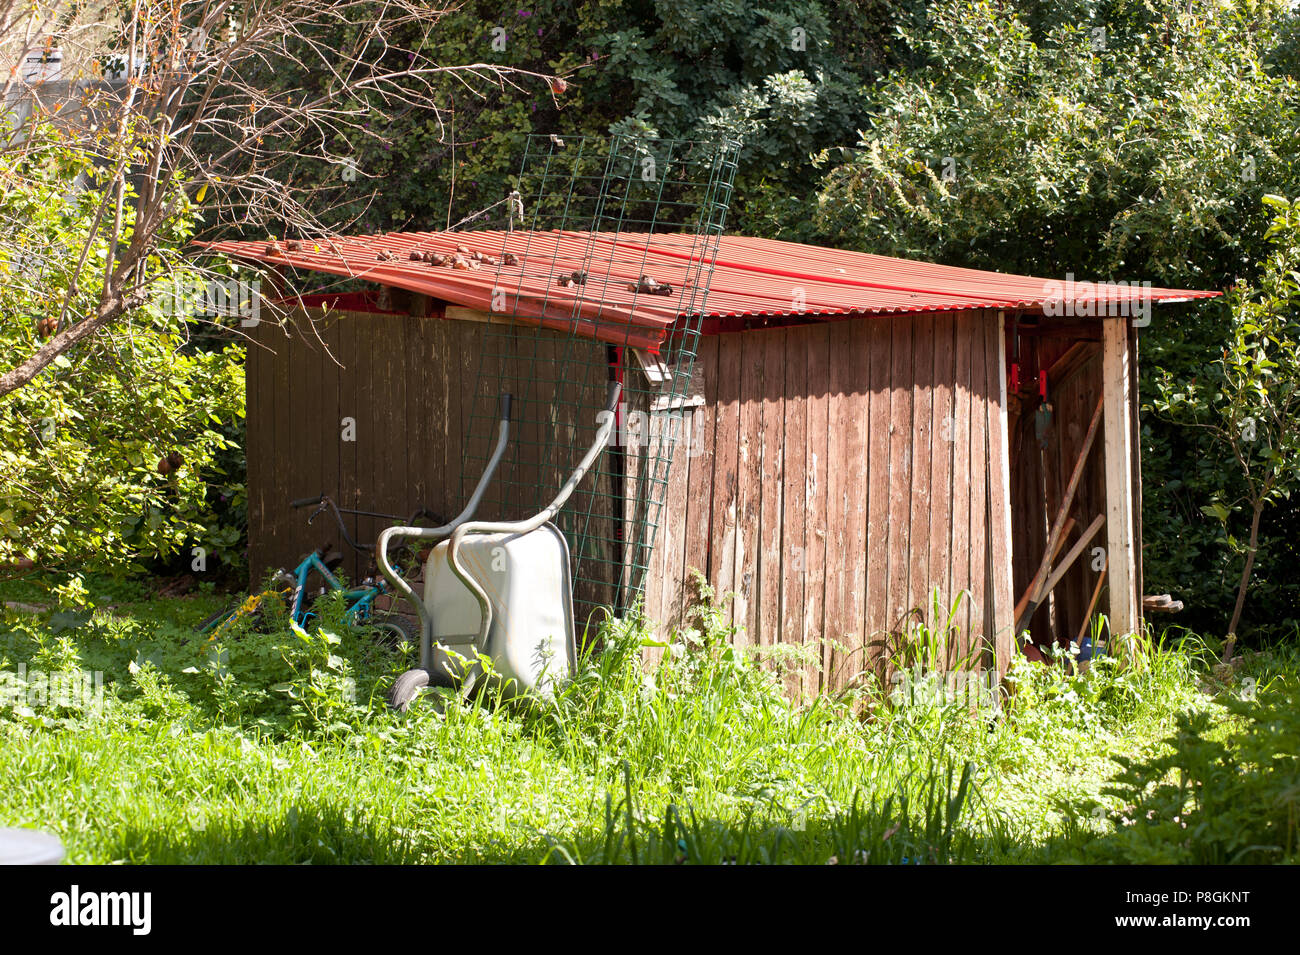 neglect shed building in garden - Stock Image